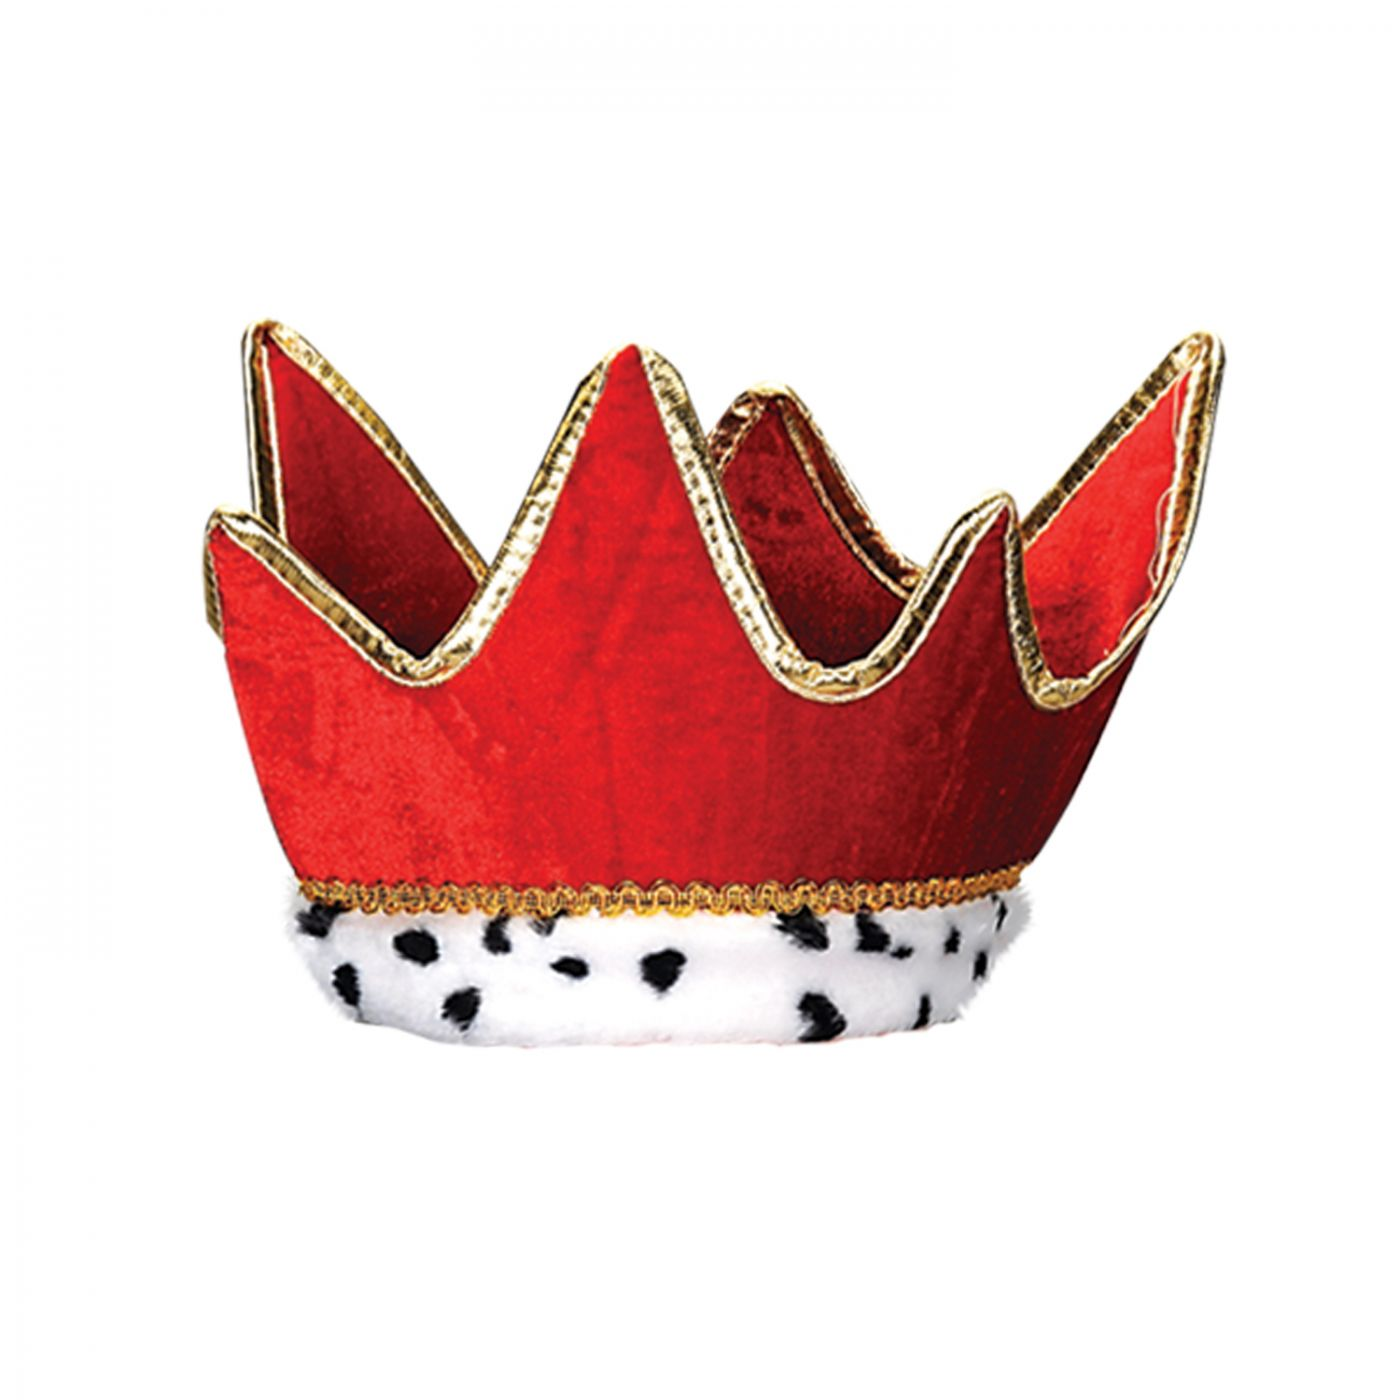 Plush Royal Crown (6) image